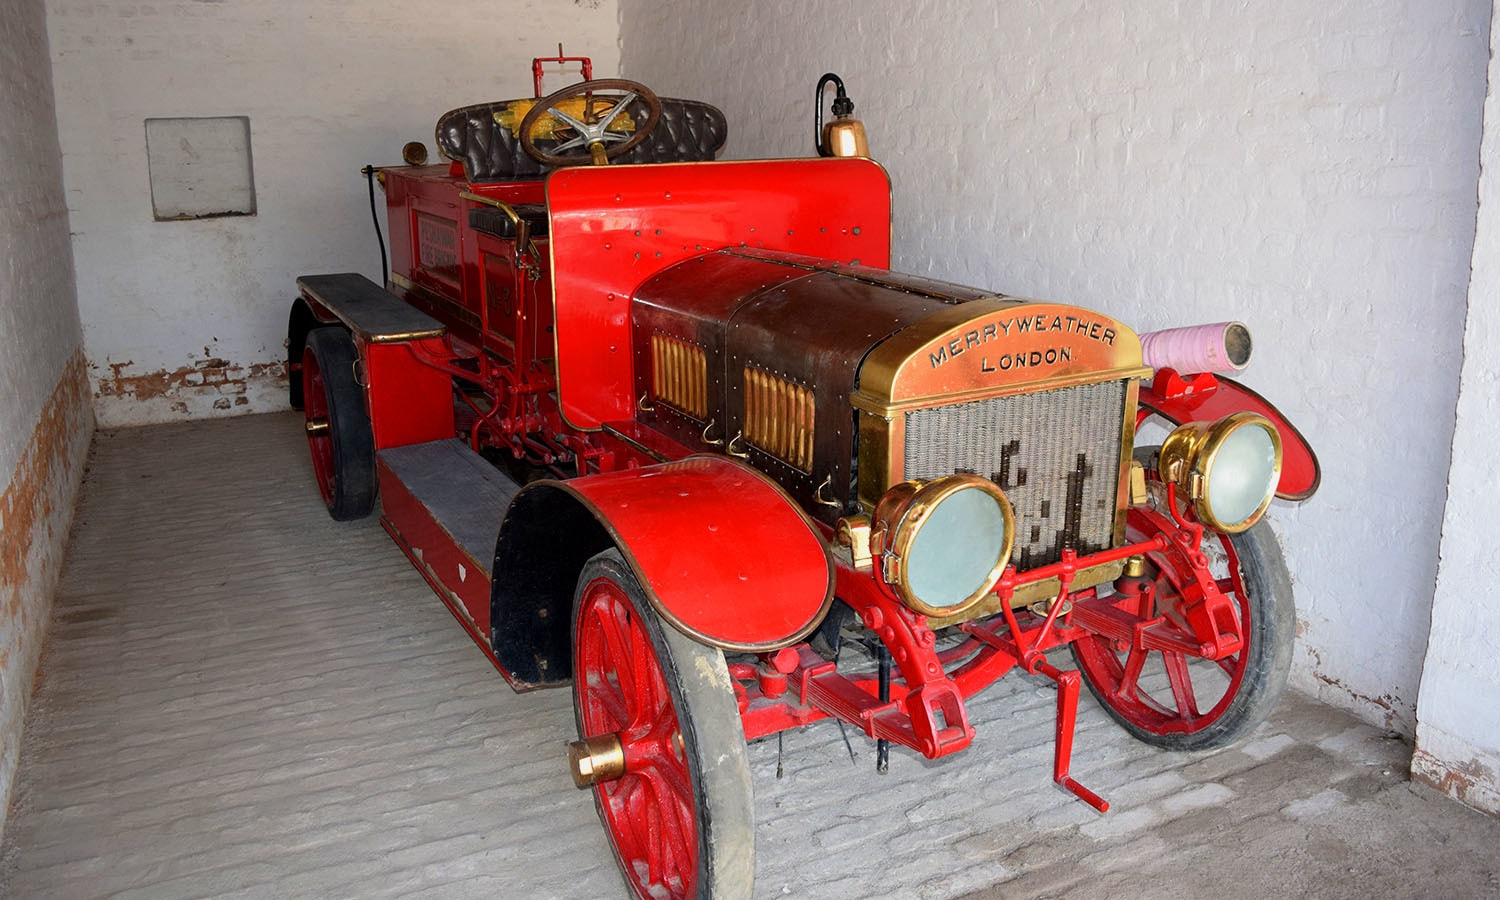 Perhaps the first fire truck in Peshawar.